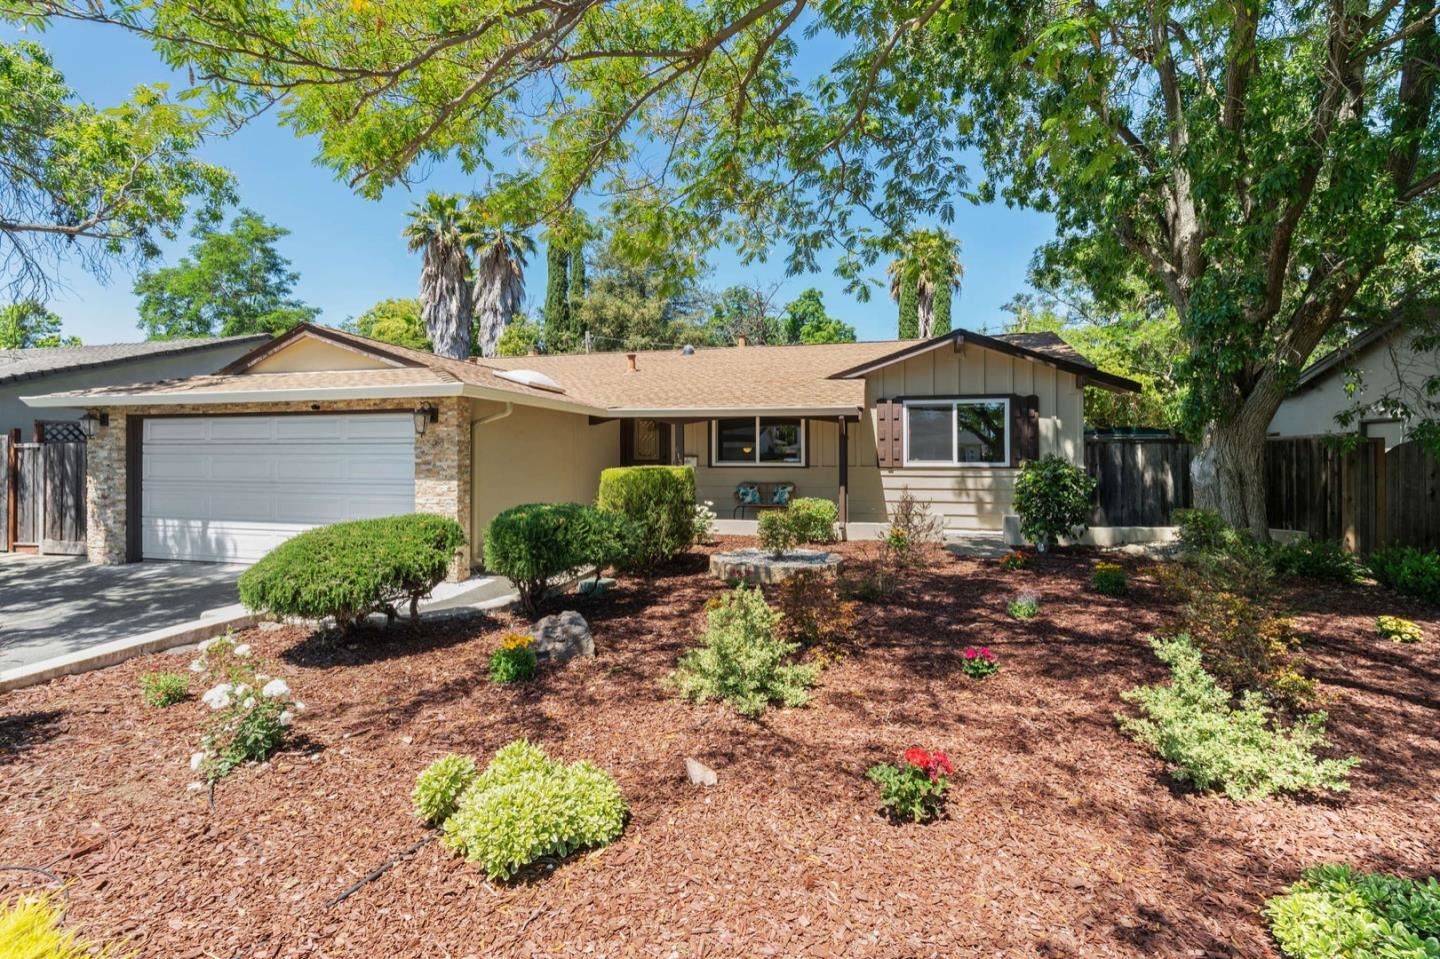 Photo for 613 Ginden Drive, CAMPBELL, CA 95008 (MLS # ML81847236)